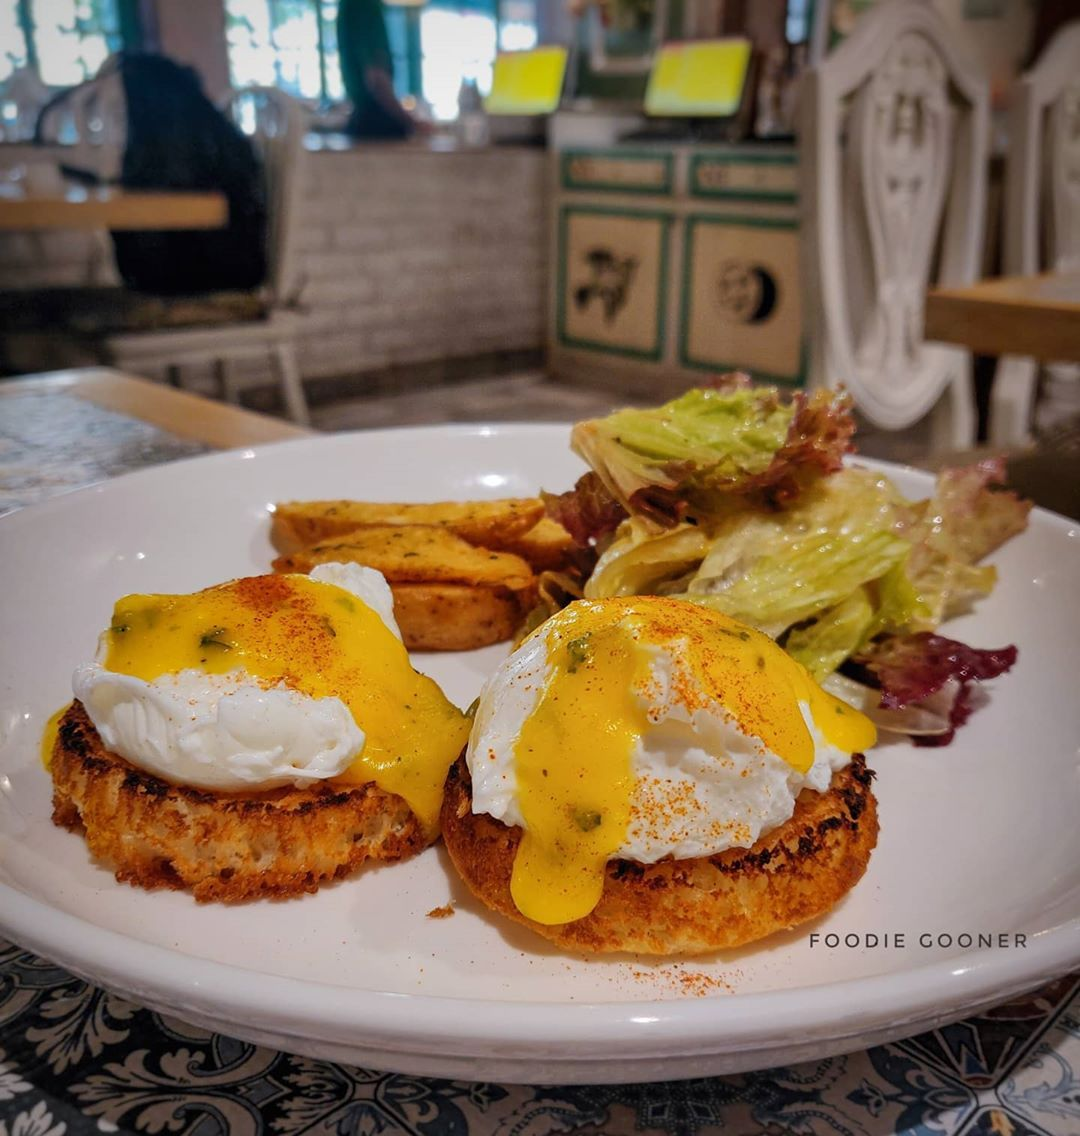 .  .  🍽️: EGGS BENEDICT (Perfectly poached eggs topped on crispy English muffin and some hollandaise sauce on top of it. Served with potato wedges and crispy lettuce salad, really loved the poached eggs and the quantity of the dish)  .  .  .  Location: @grandmamascafe  .  .  .  Price: 280/- (Slightly expensive but worth the money)  .  .  .  Rating: 4.5/5 🌟🔥 (Must try dish) .  .  .  .  #foodbossindia #eggetarian #mumbaifoodie #foodmaniacindia #shawarma #streetfoodlove #eggsbenedict #englishmuf